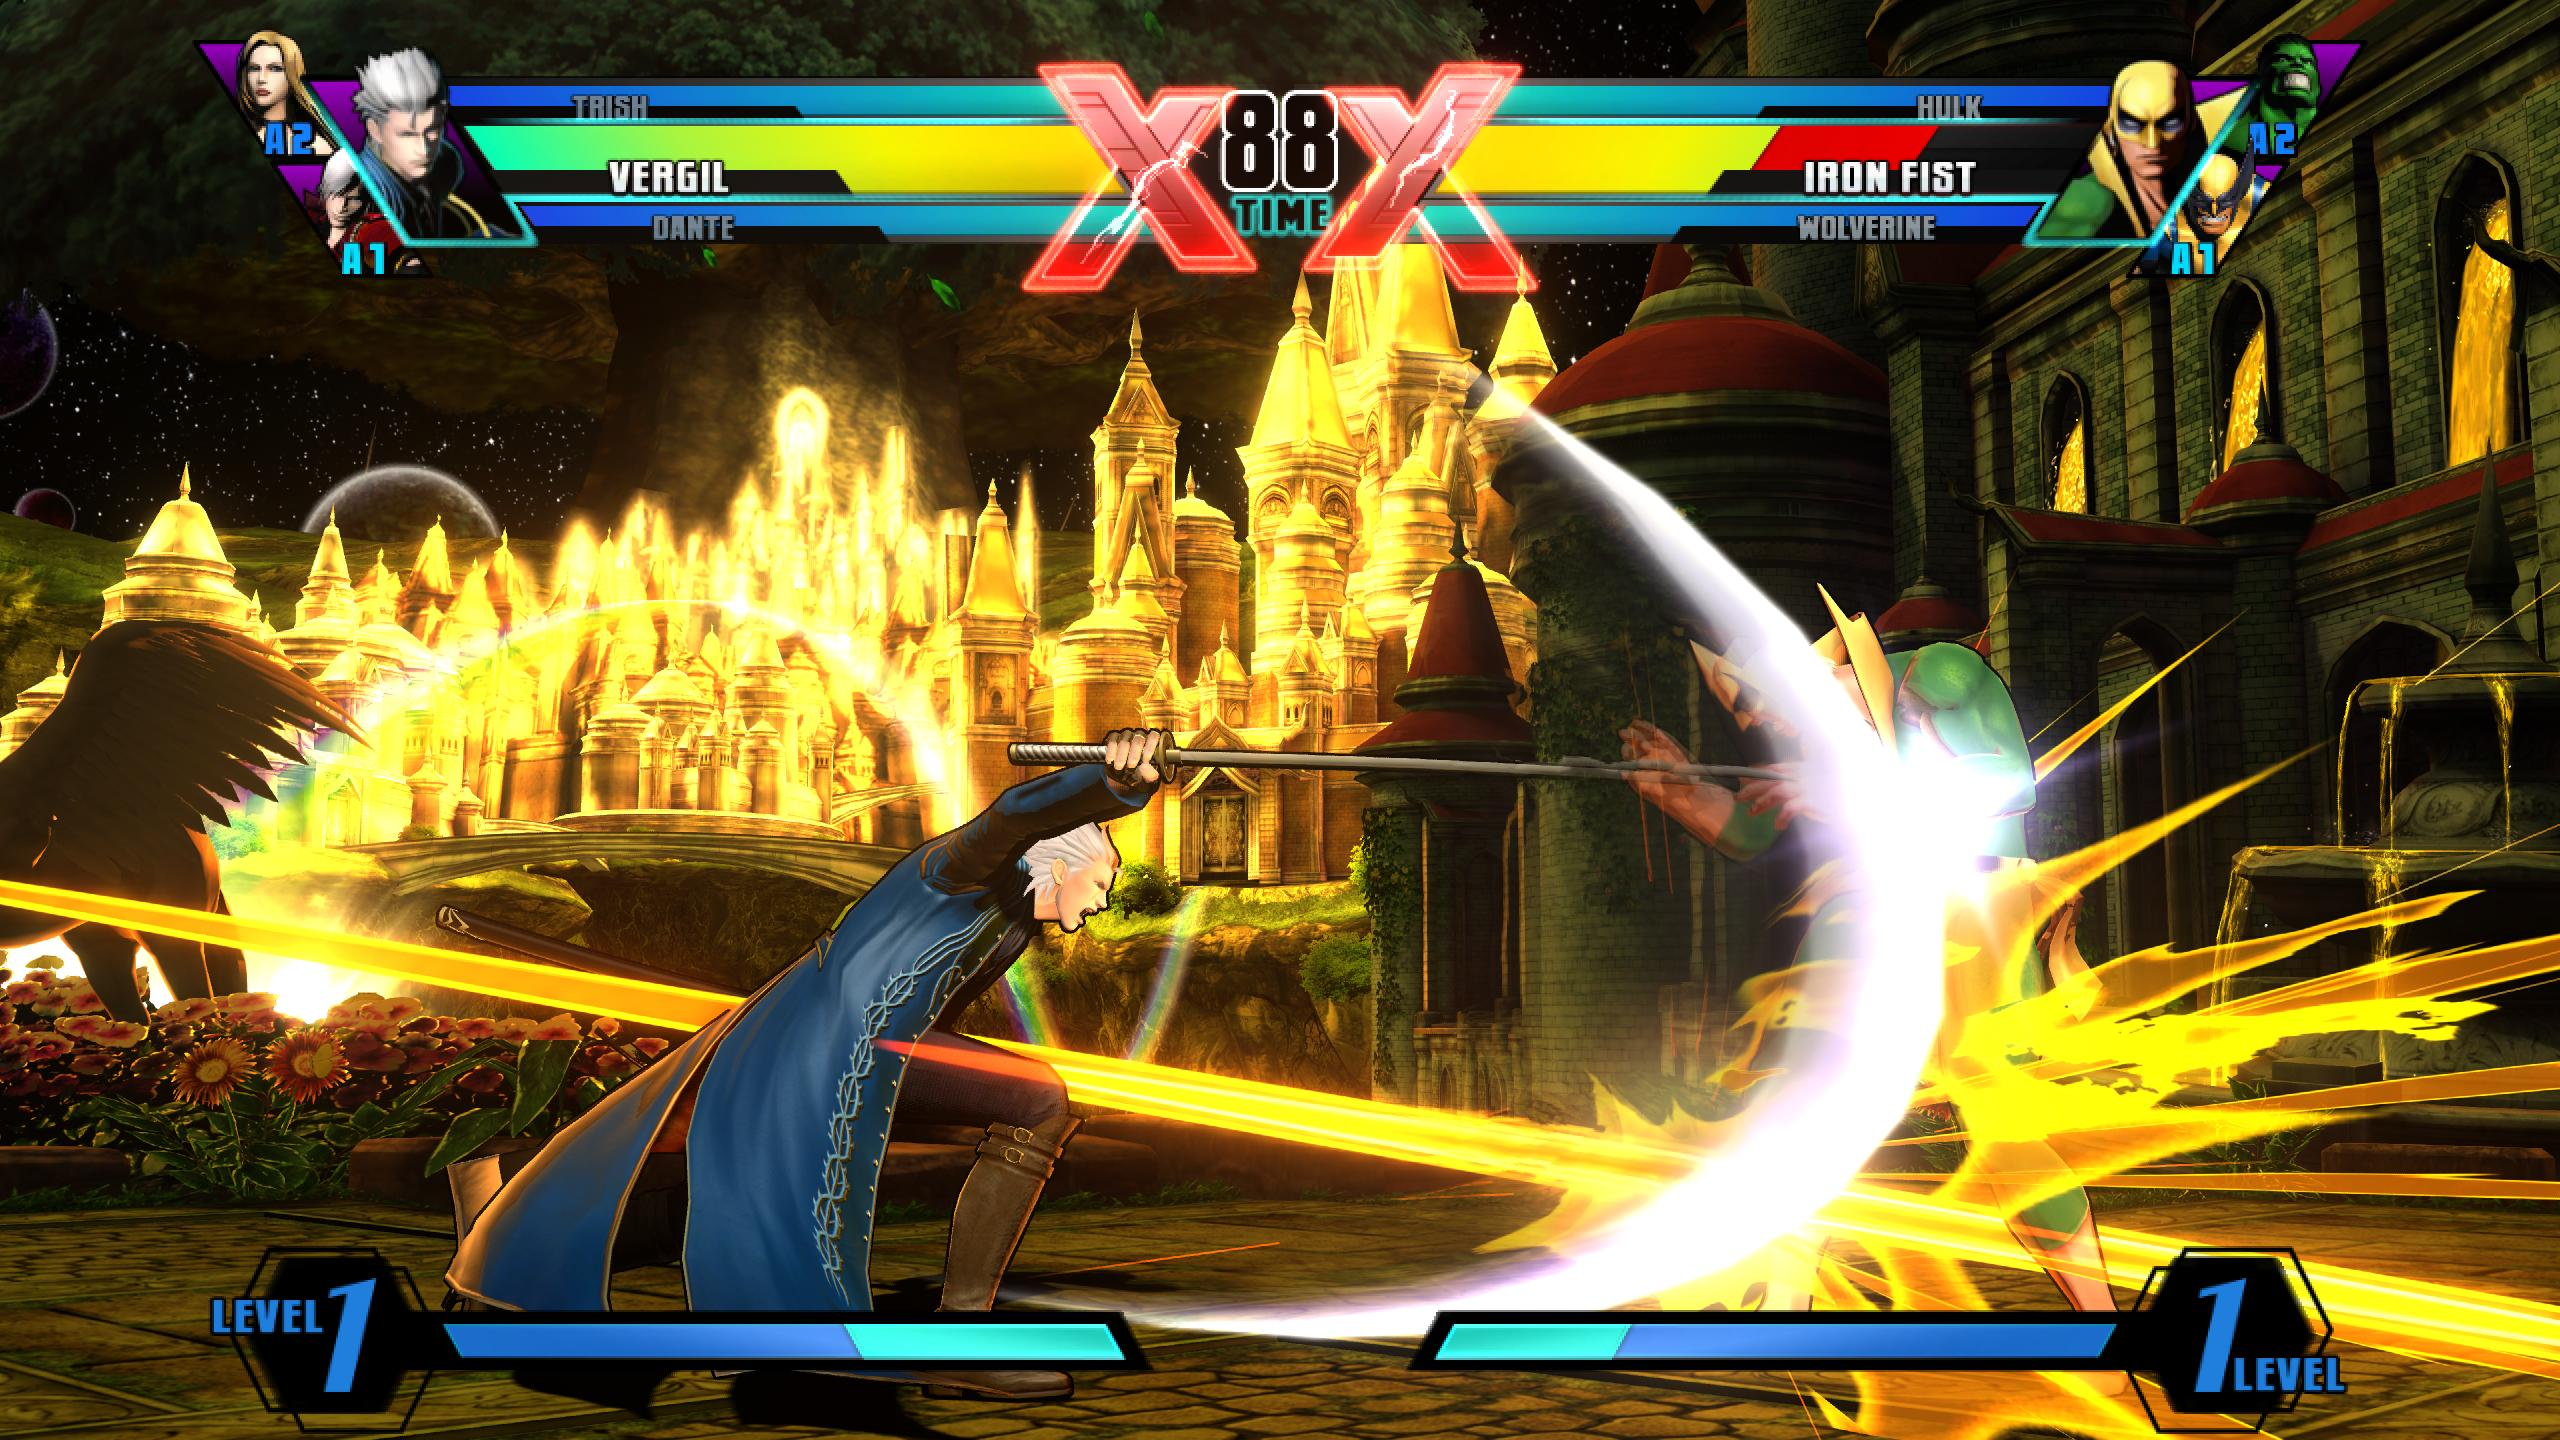 Vergil dans Ultimate Marvel vs. Capcom 3 6151125614_787ef48a9e_o